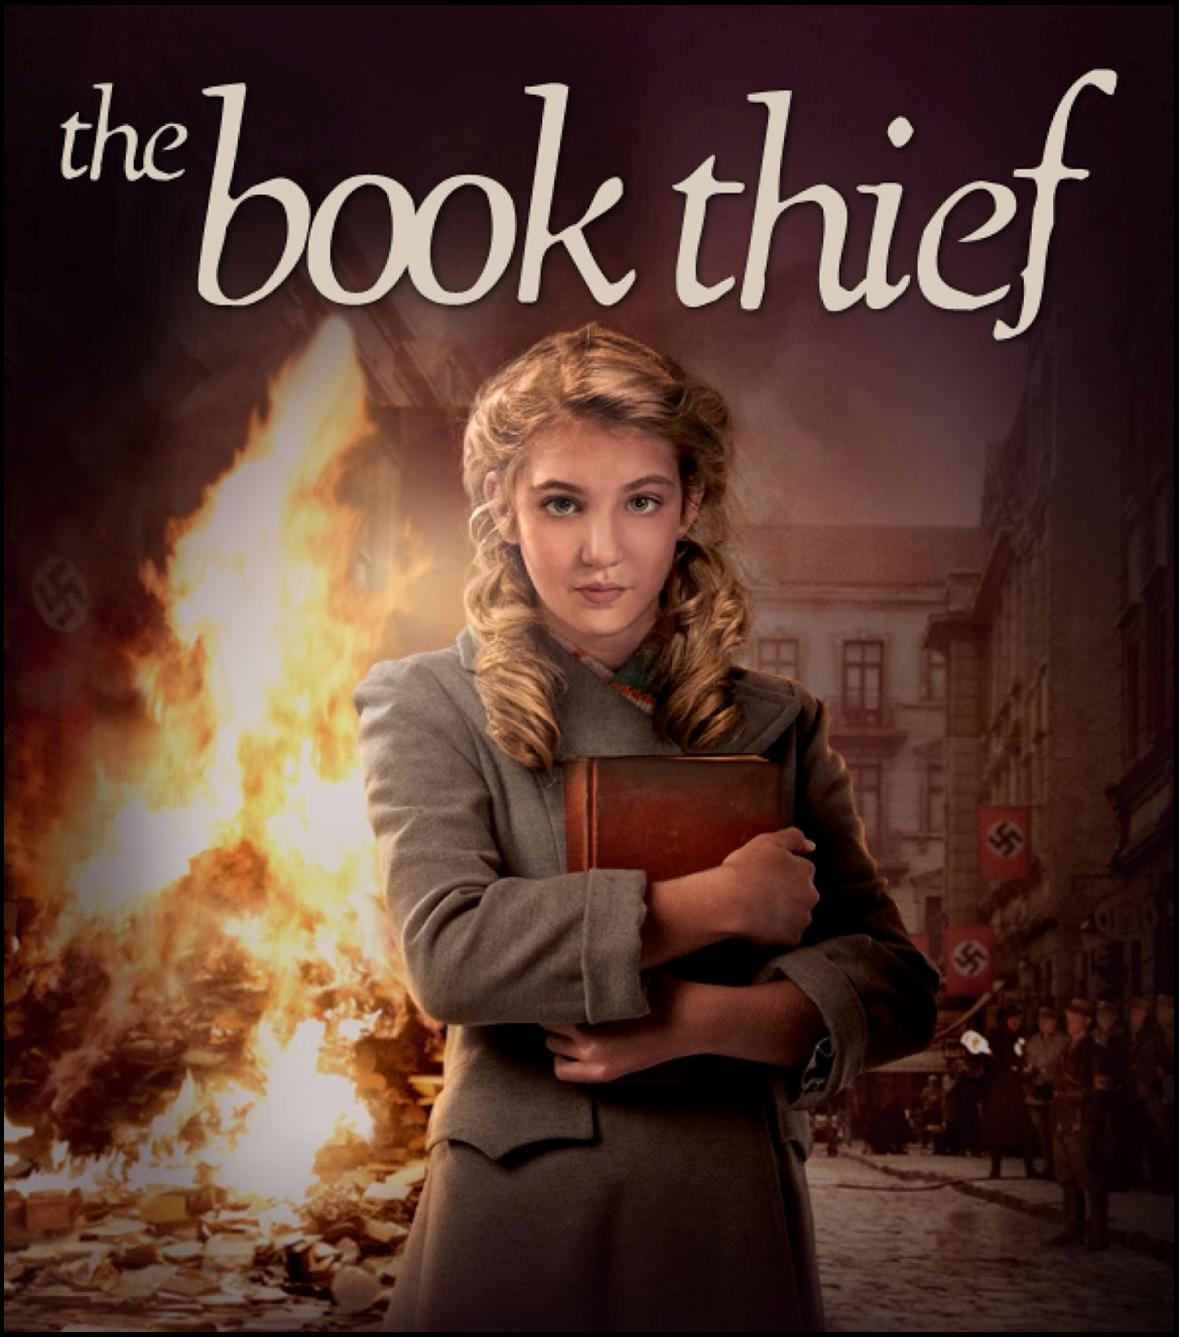 book-thief-image.jpg